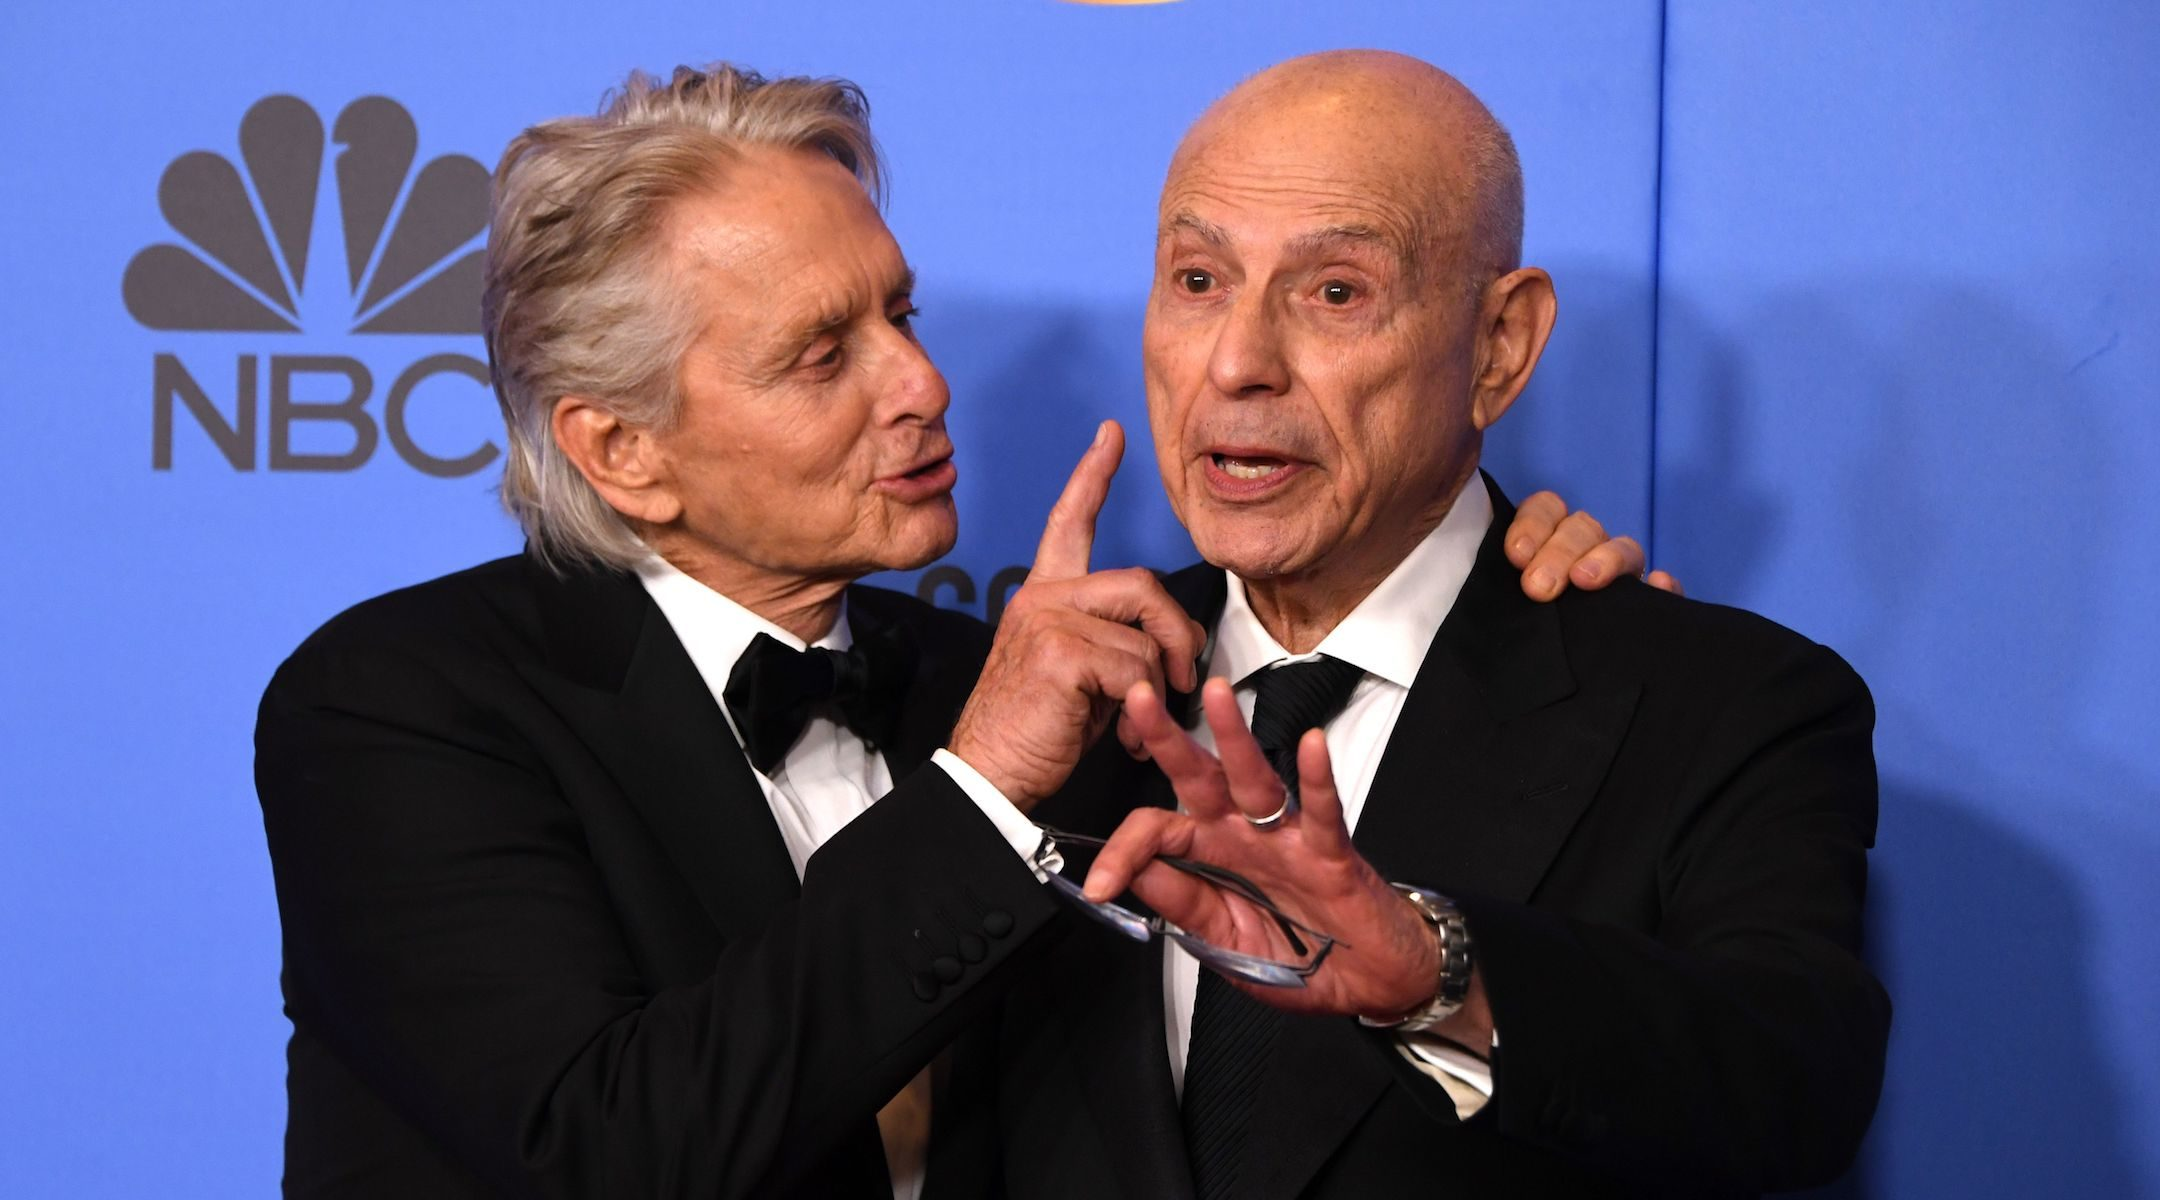 Michael Douglas, left, and Alan Arkin have some fun after winning big at the 76th annual Golden Globe Awards in Beverly Hills, Calif., Jan. 6, 2019. (Photo/JTA-Mark Ralston-AFP-Getty Images)